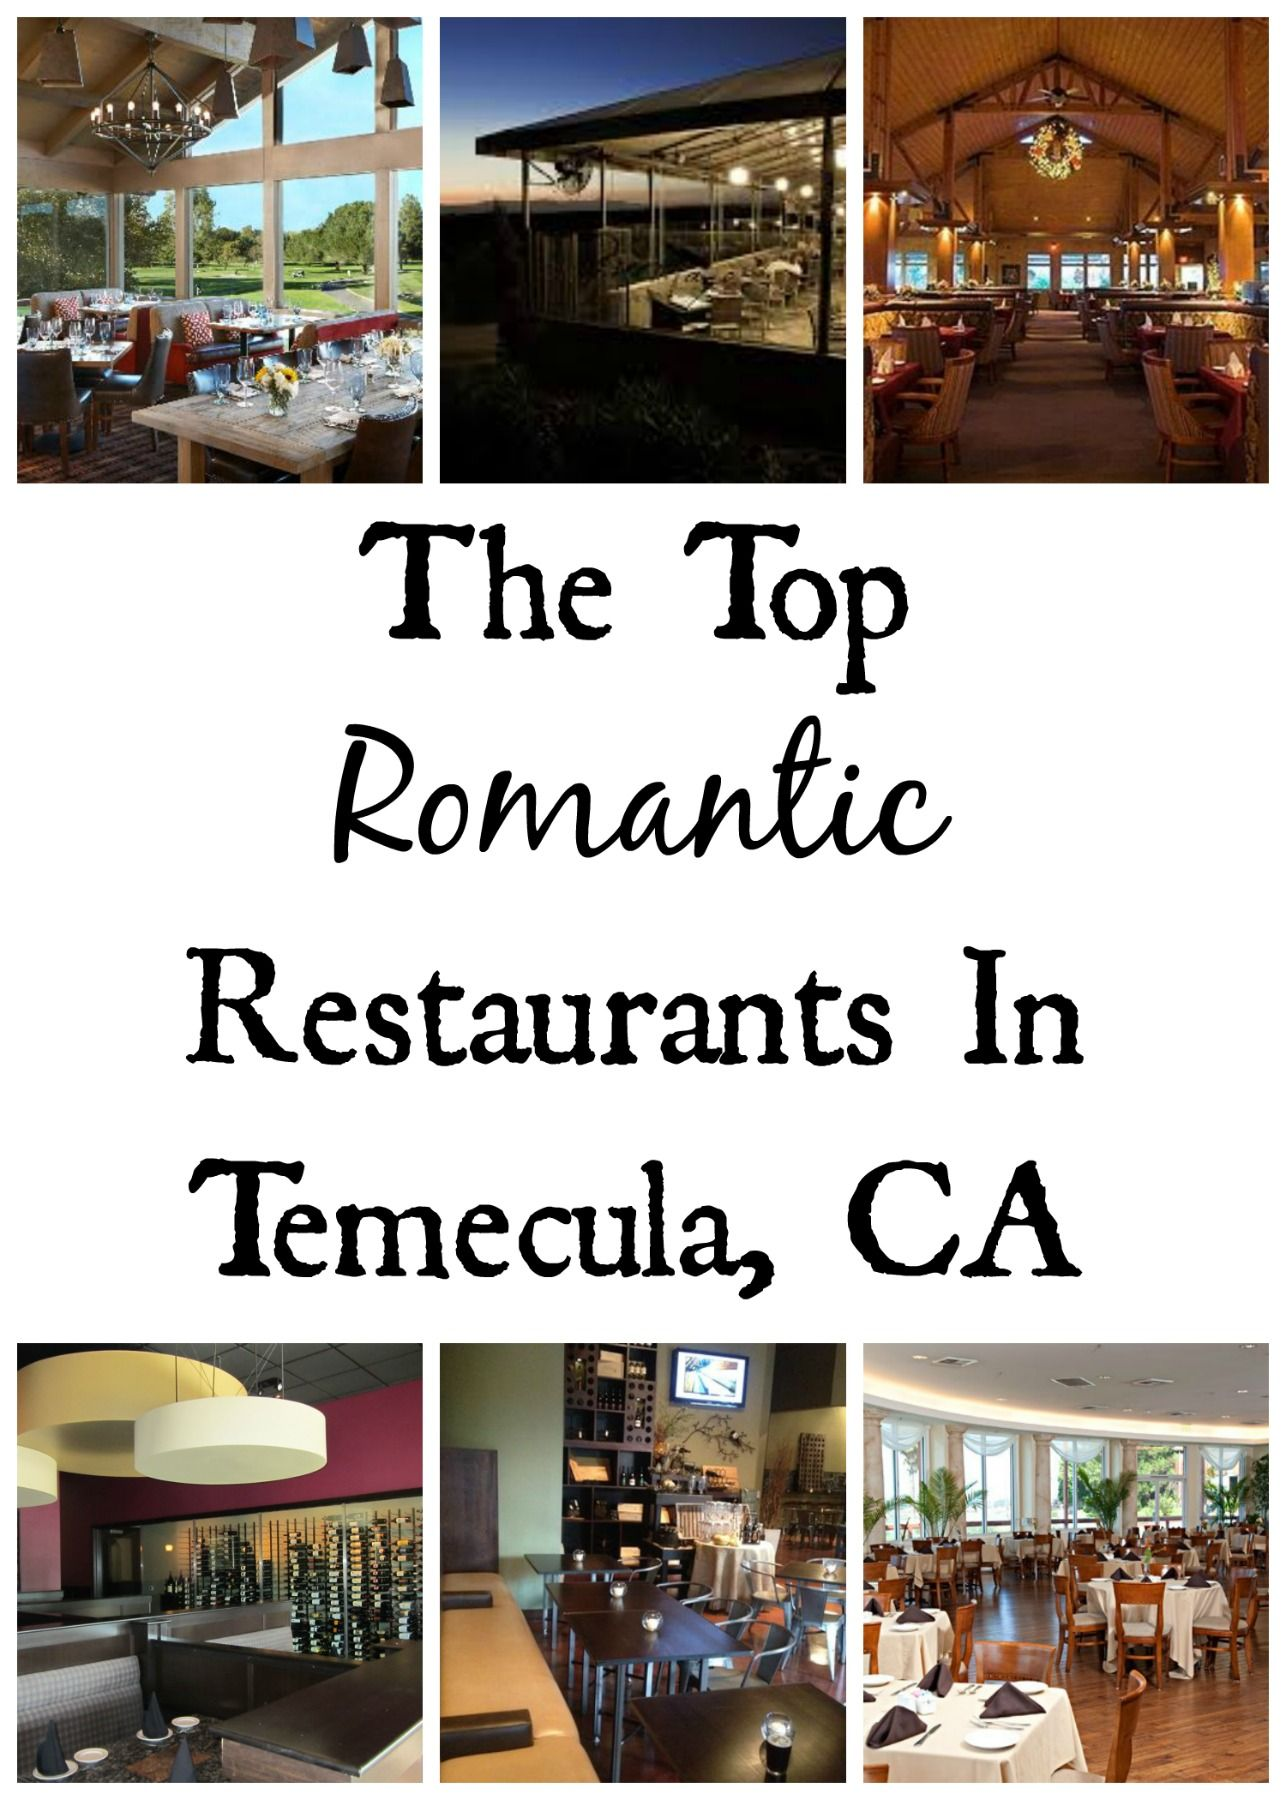 Top Restaurants In Temecula Ca